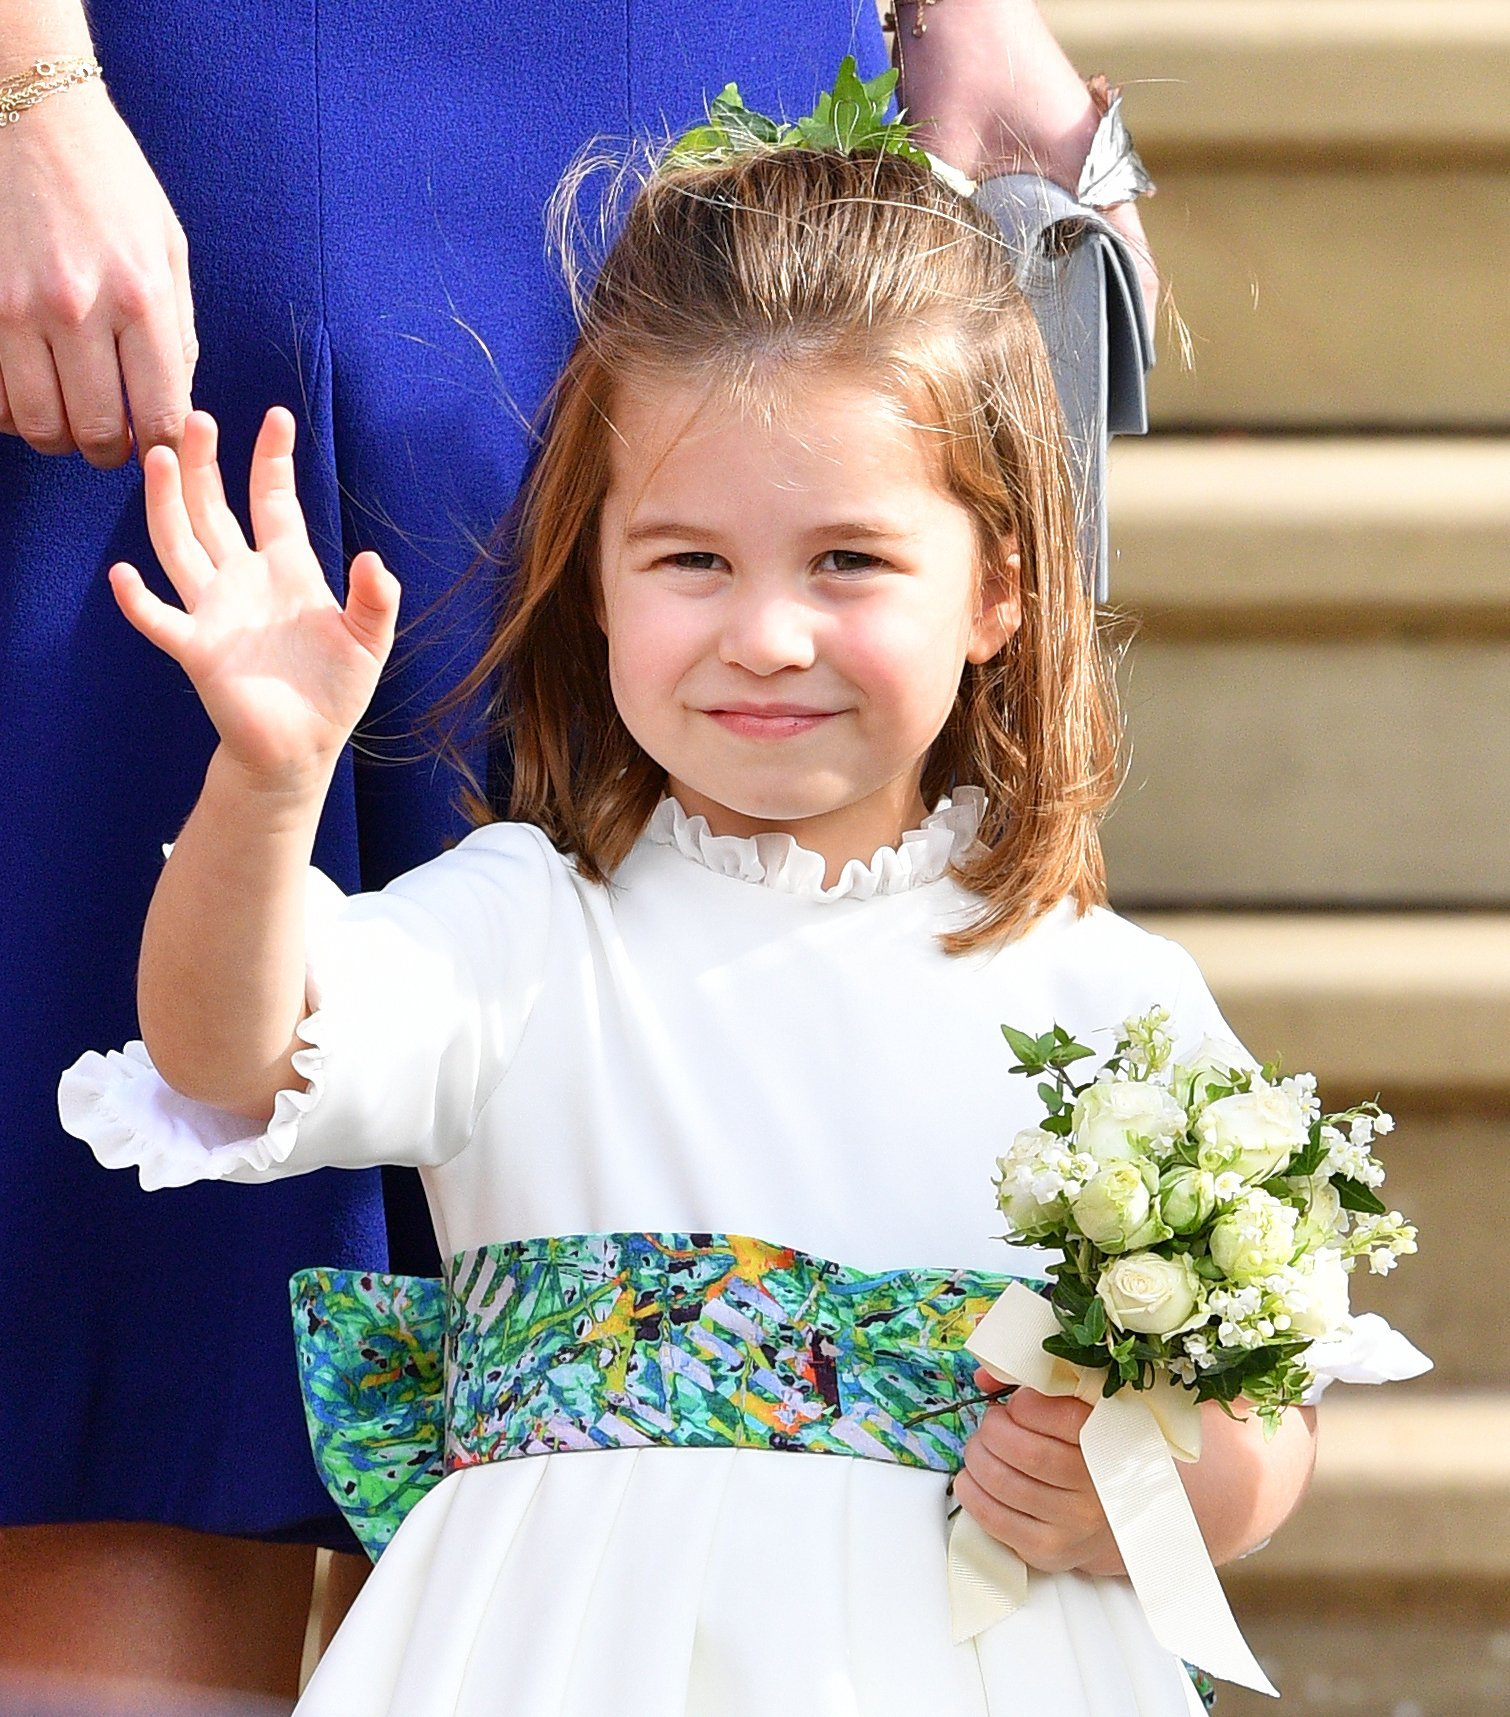 Princess Charlotte at the wedding of Princess Eugenie and Jack Brooksbank at St George's Chapel on October 12, 2018 in Windsor, England | Photo: Getty Images